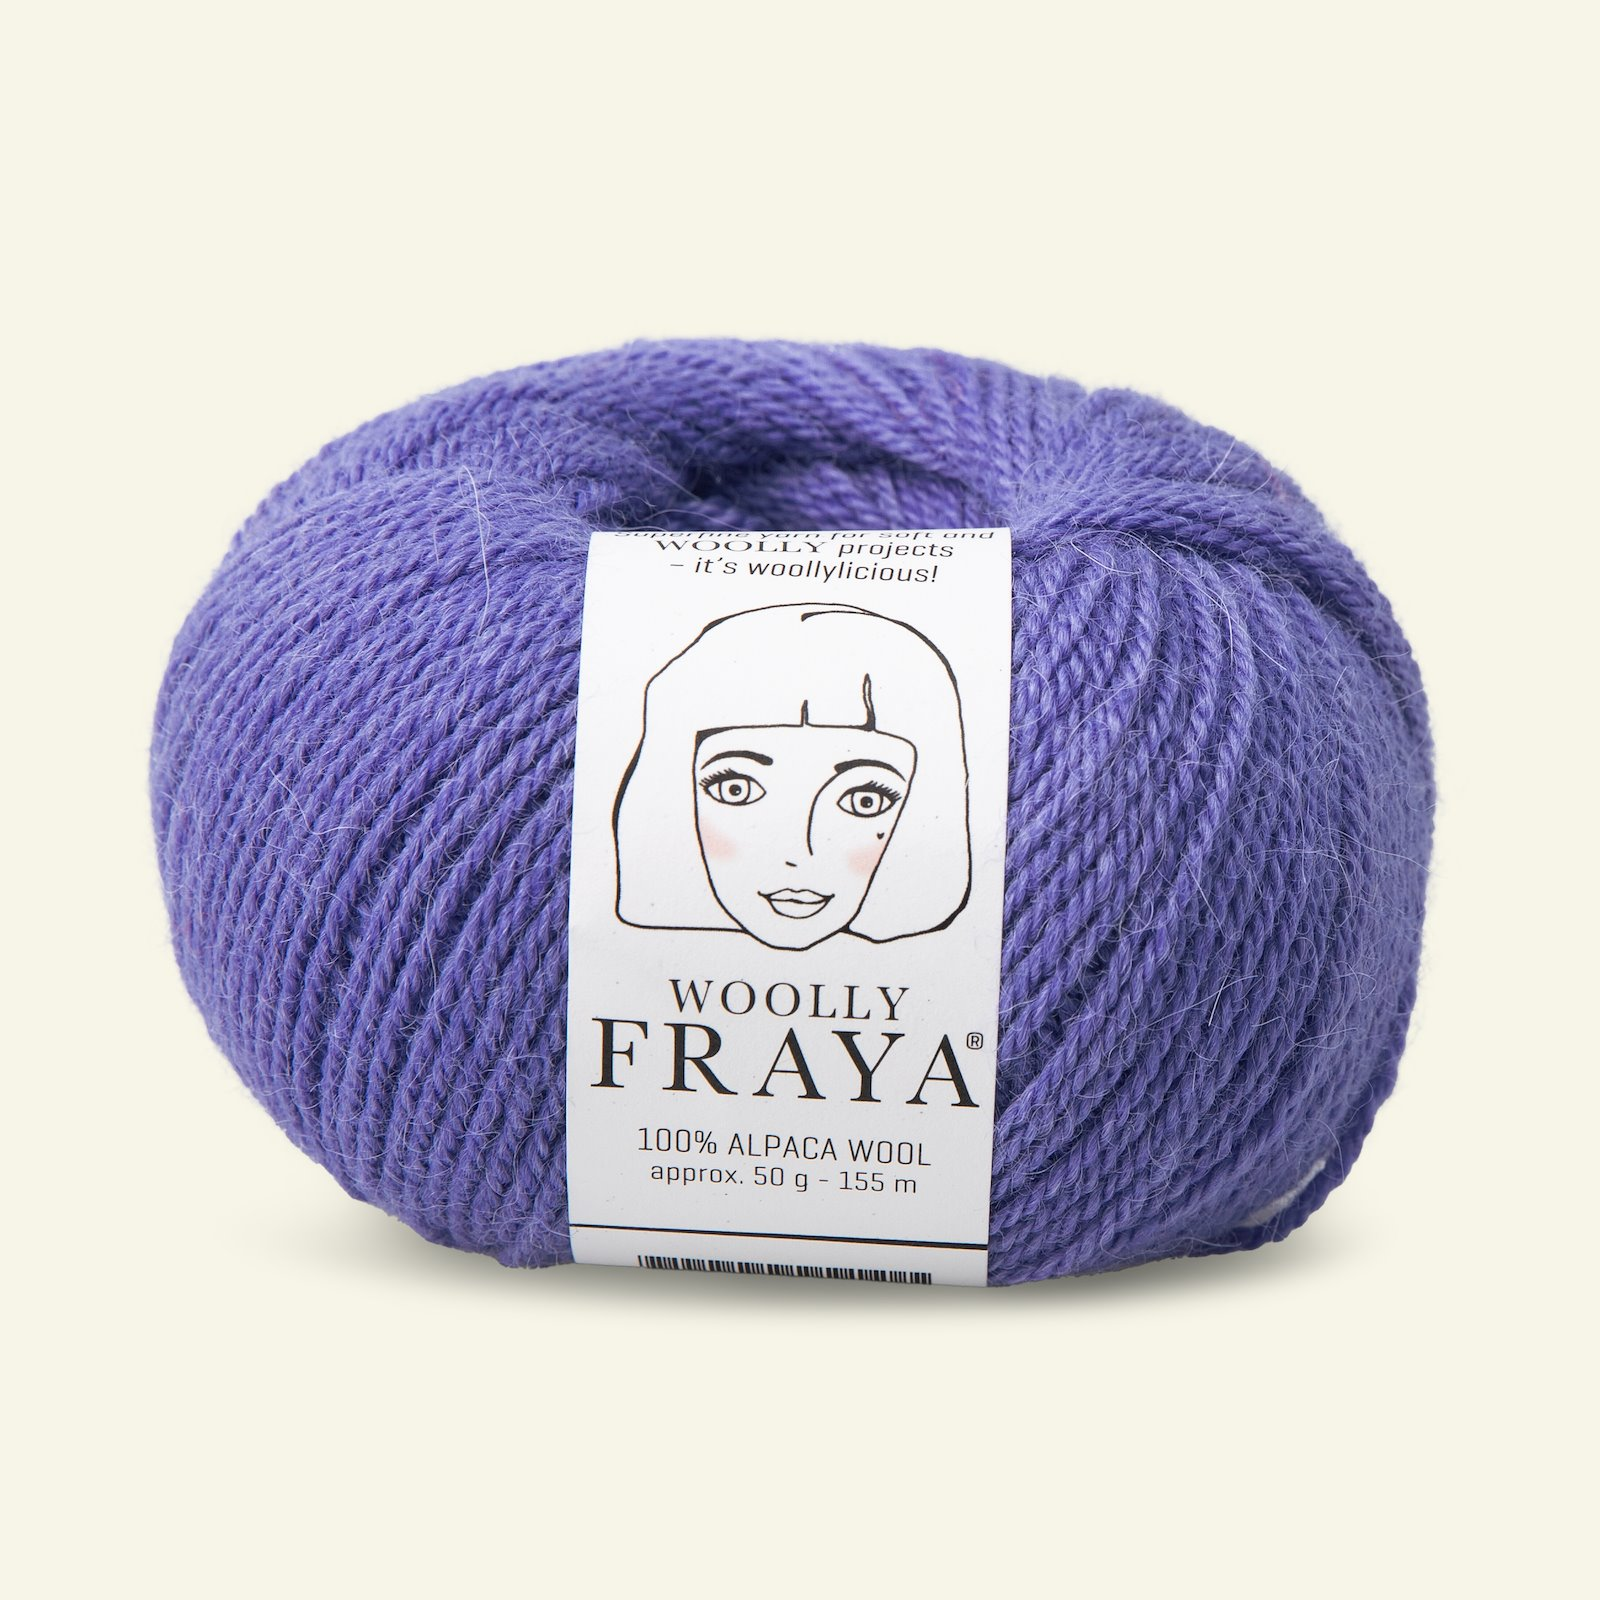 Woolly 50g bright blue 90000063_pack